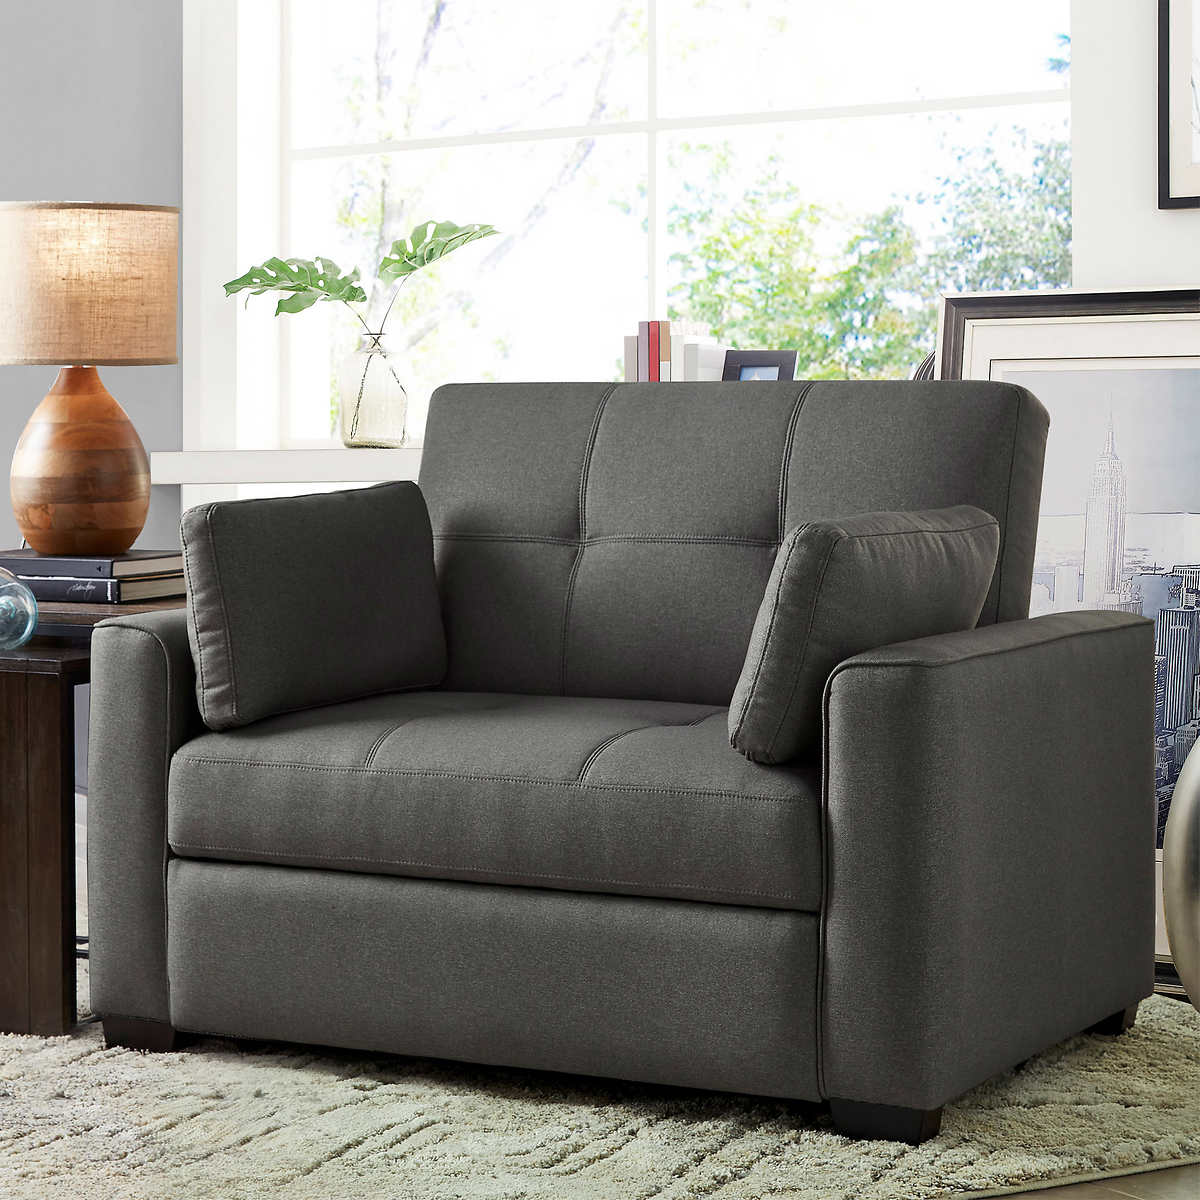 Chairs for living room furniture - Westport Fabric Sleeper Chair Heather Gray